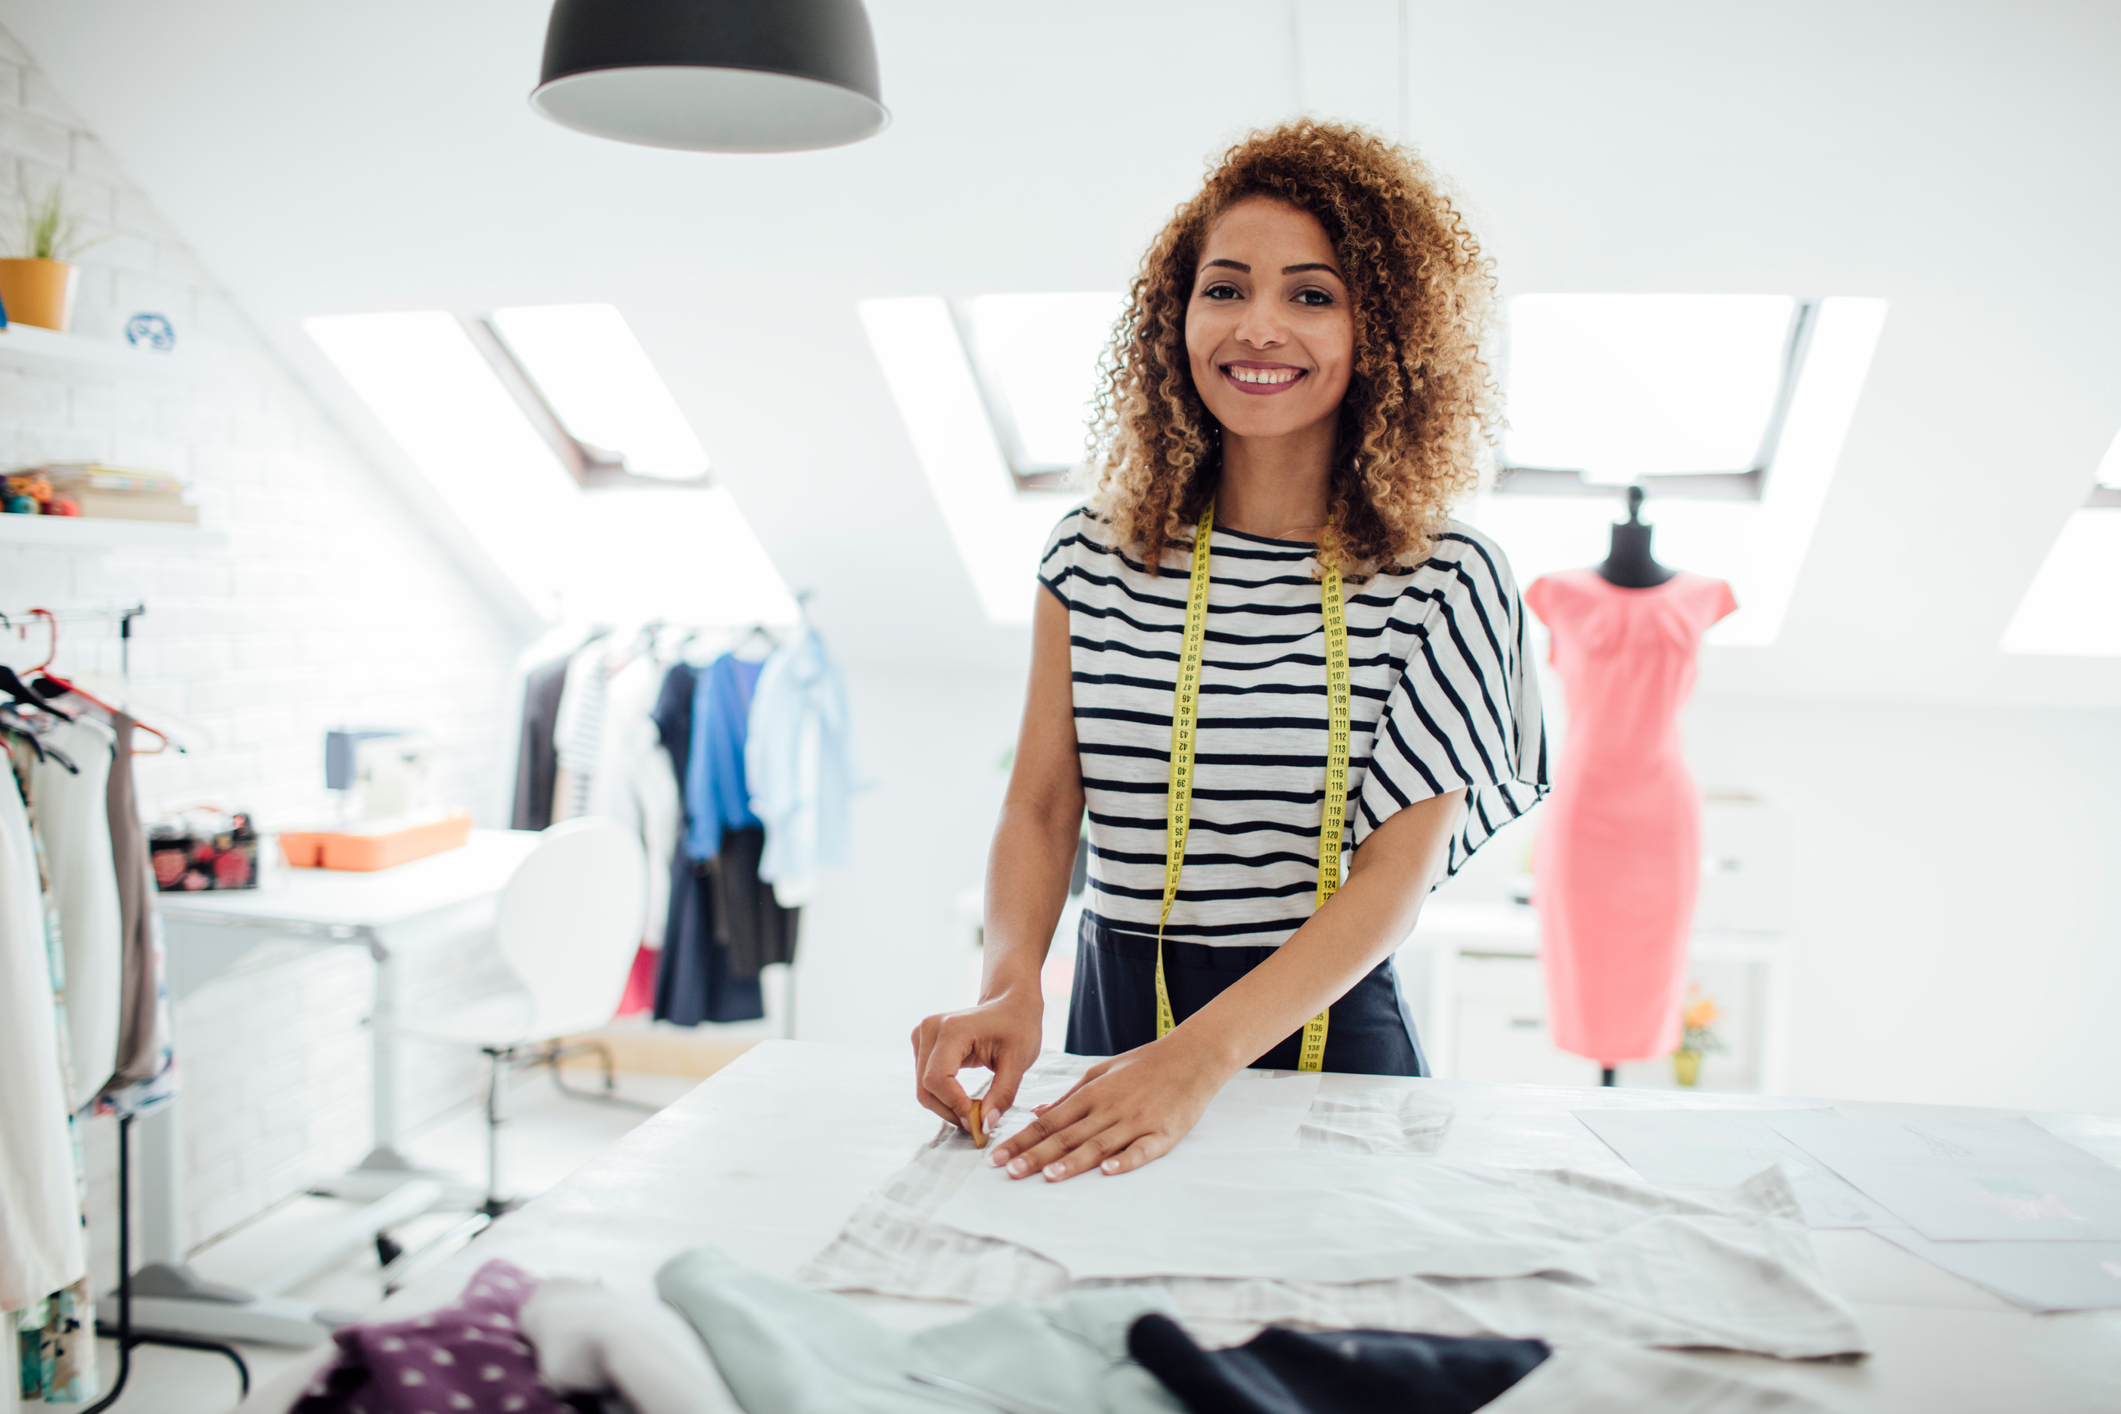 What does a Fashion Designer do?